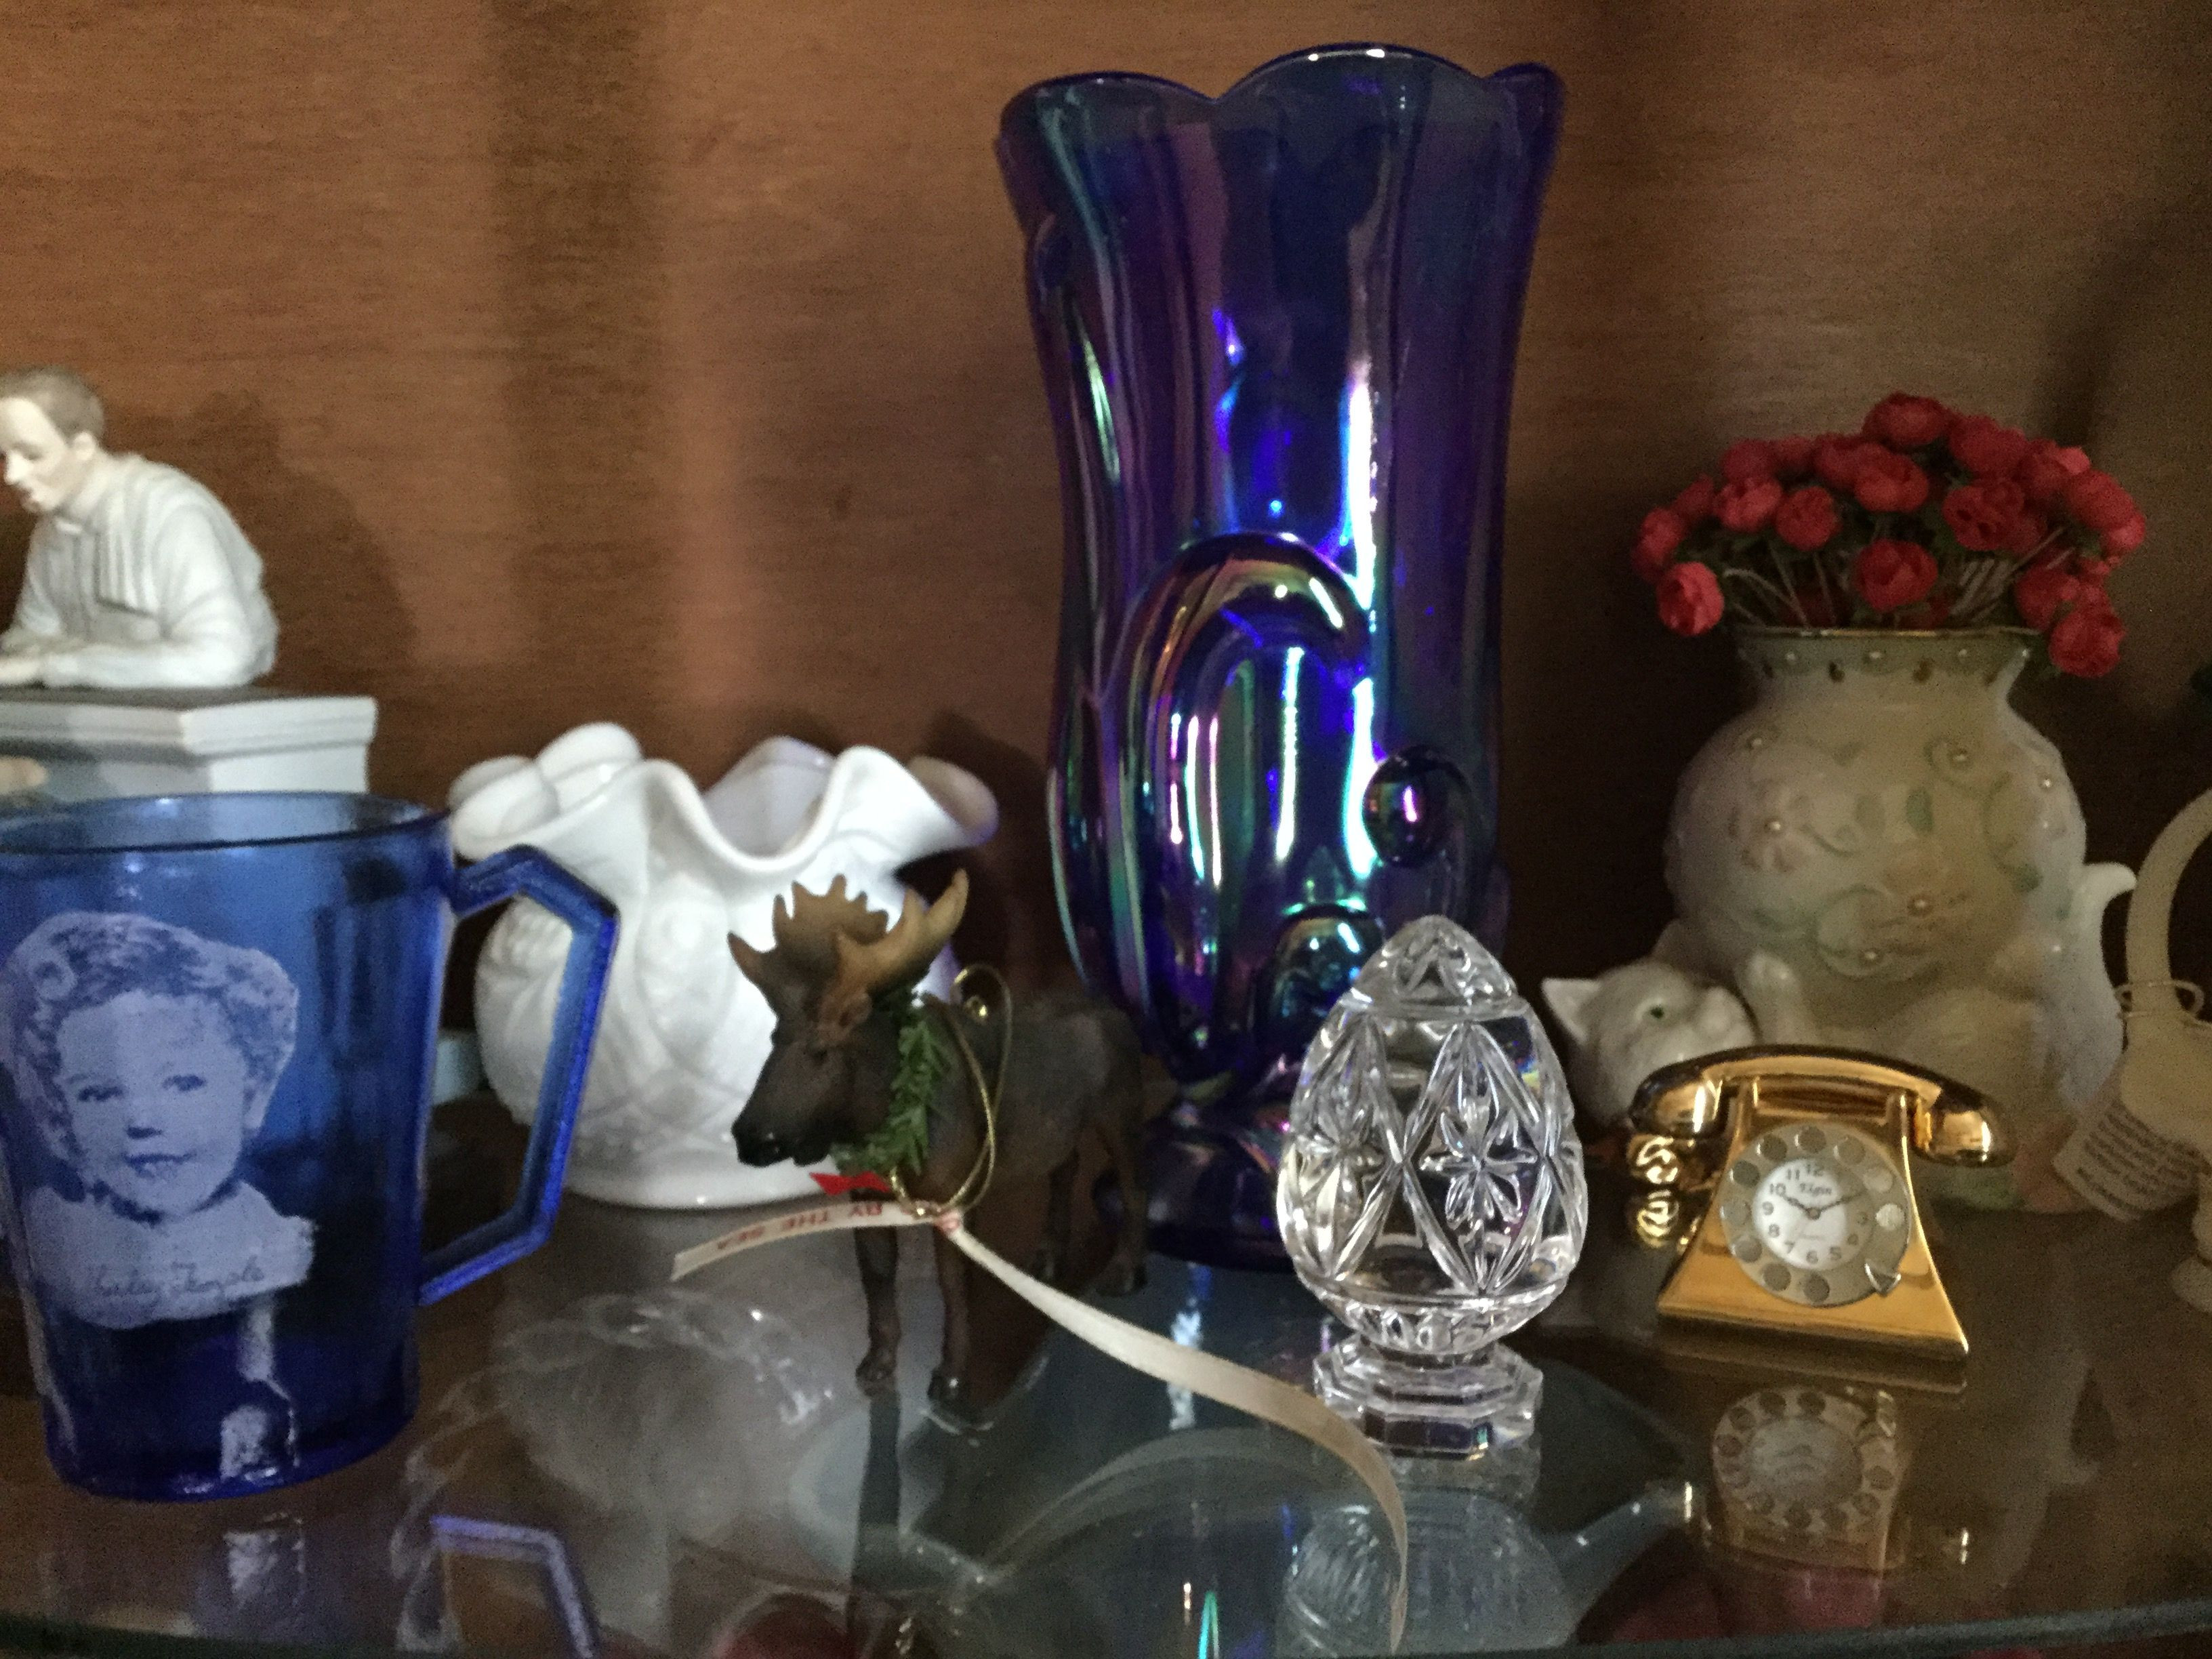 19 Recommended Lenox Small Vase 2021 free download lenox small vase of blue tall vintage fenton vase small fenton vase 1930s shirley within blue tall vintage fenton vase small fenton vase 1930s shirley temple cobalt blue cup lenox cat in bac